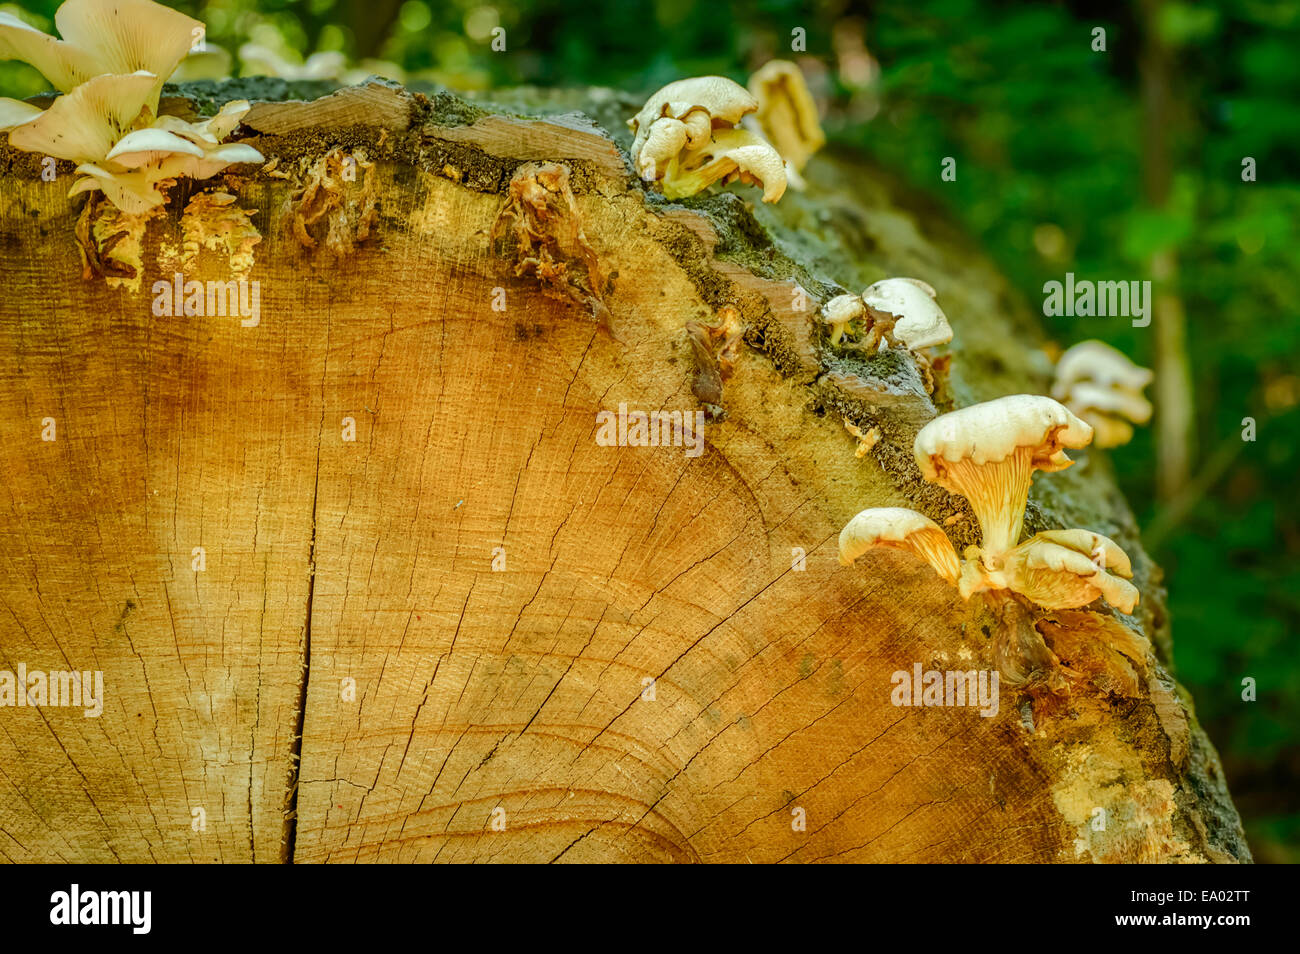 tree log with fungi with a blurred background - Stock Image